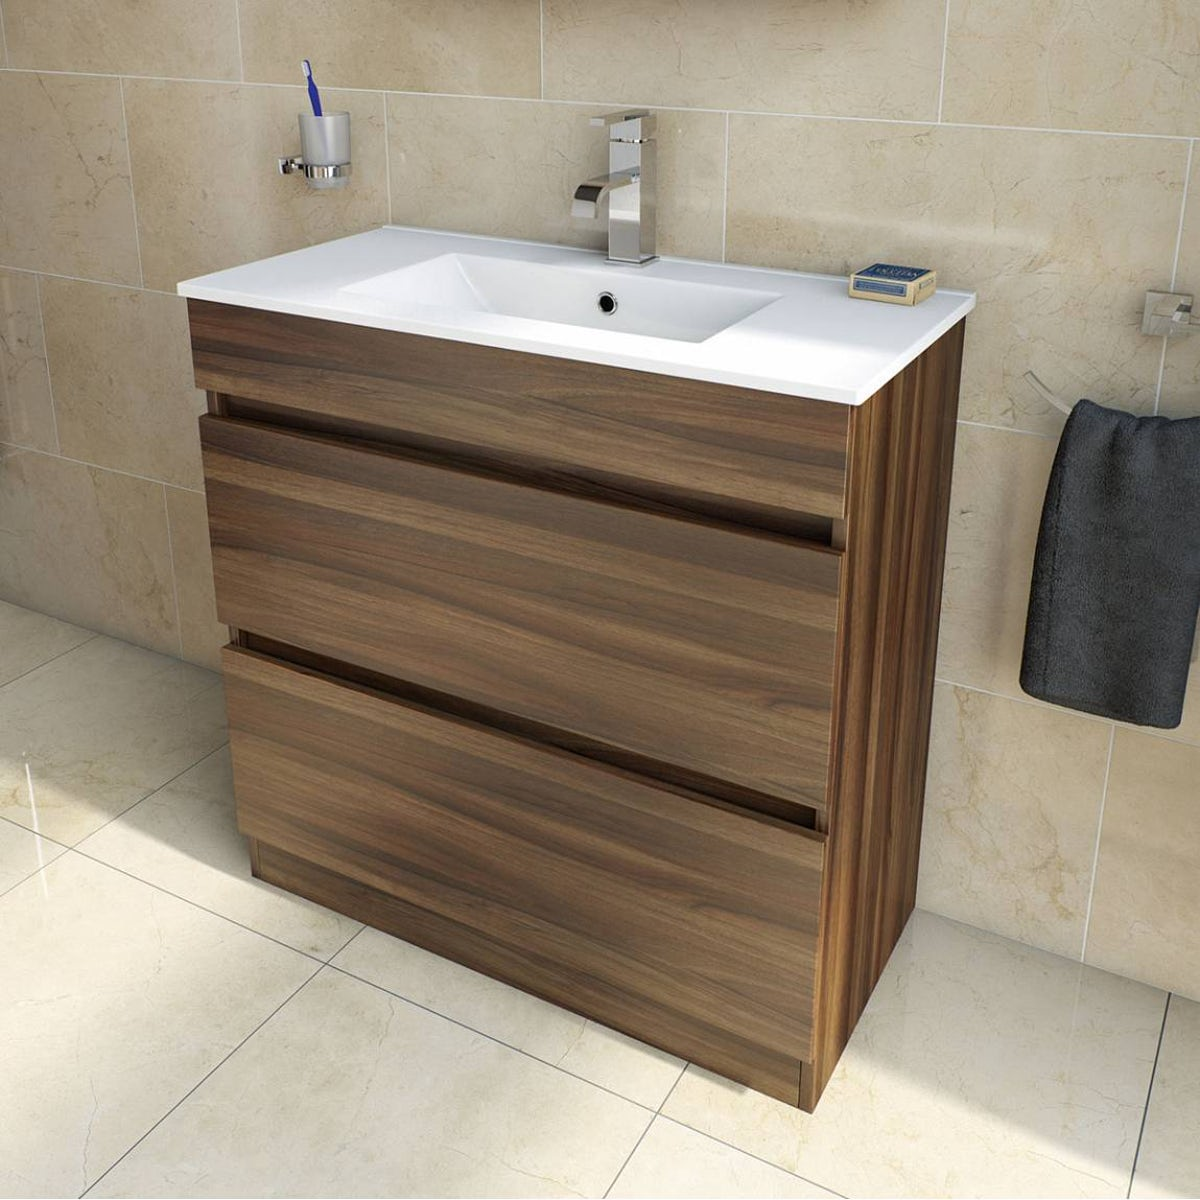 Plan walnut vanity drawer unit and basin 800mm for Bathroom cabinets 800mm wide